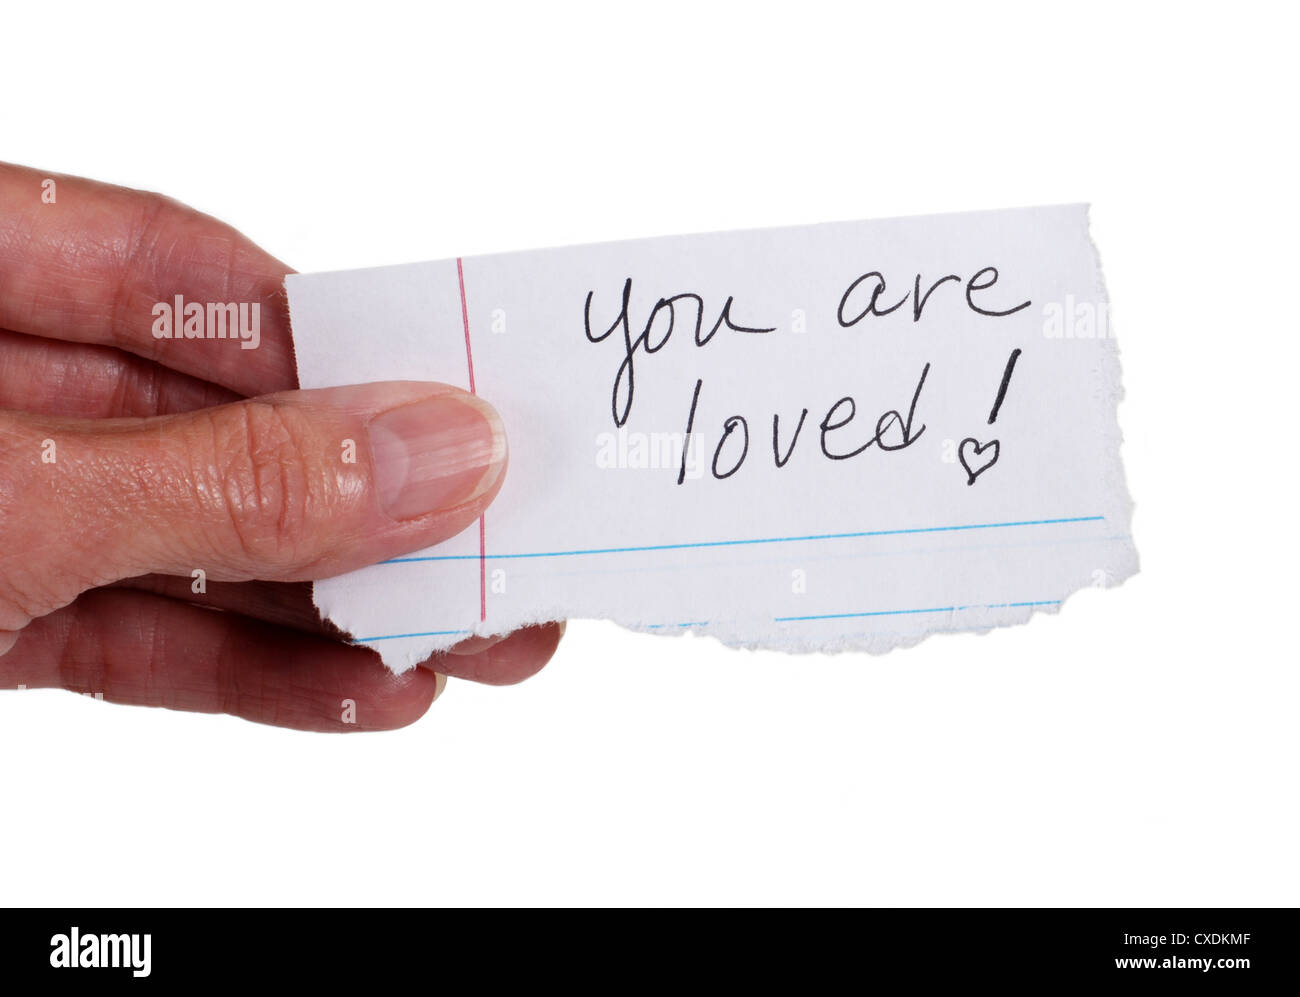 Close up of a hand holding a note with the words: 'You Are Loved'. Isolated on white. - Stock Image